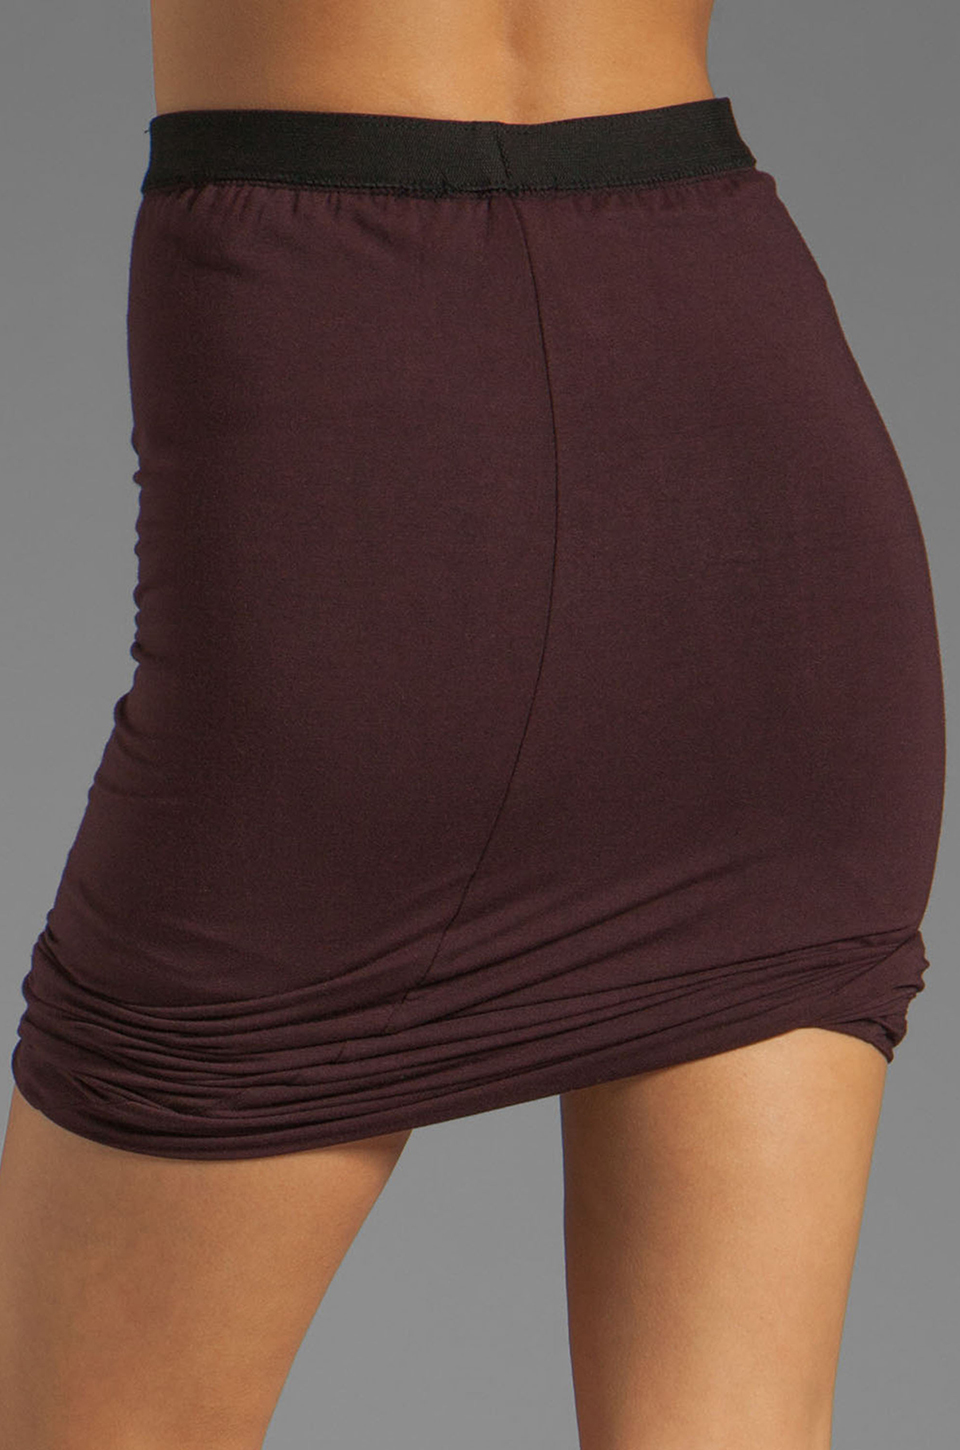 T by Alexander Wang Micro Modal Spandex Twist Skirt in Iodine